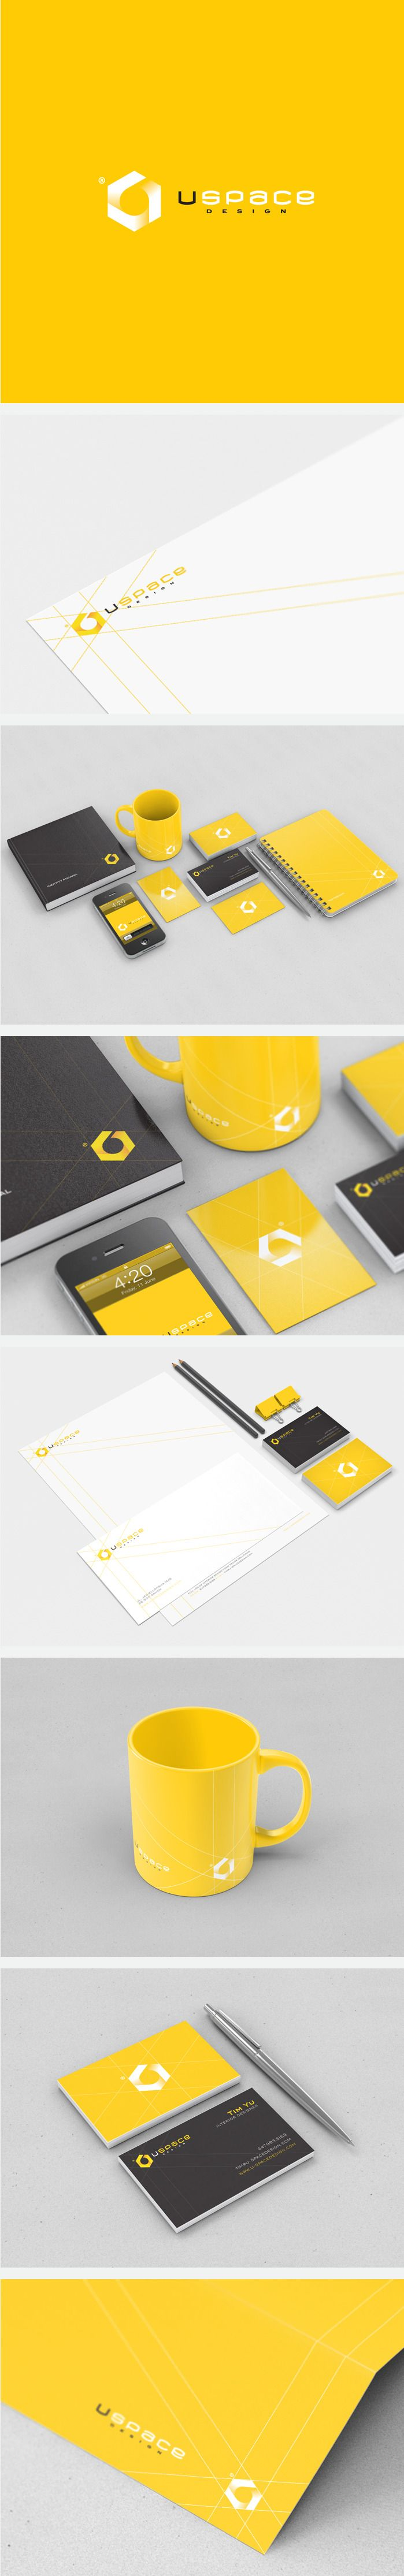 uSpace logo and branding design by Triptic. Black and white and yellow corporate #stationery suite design.